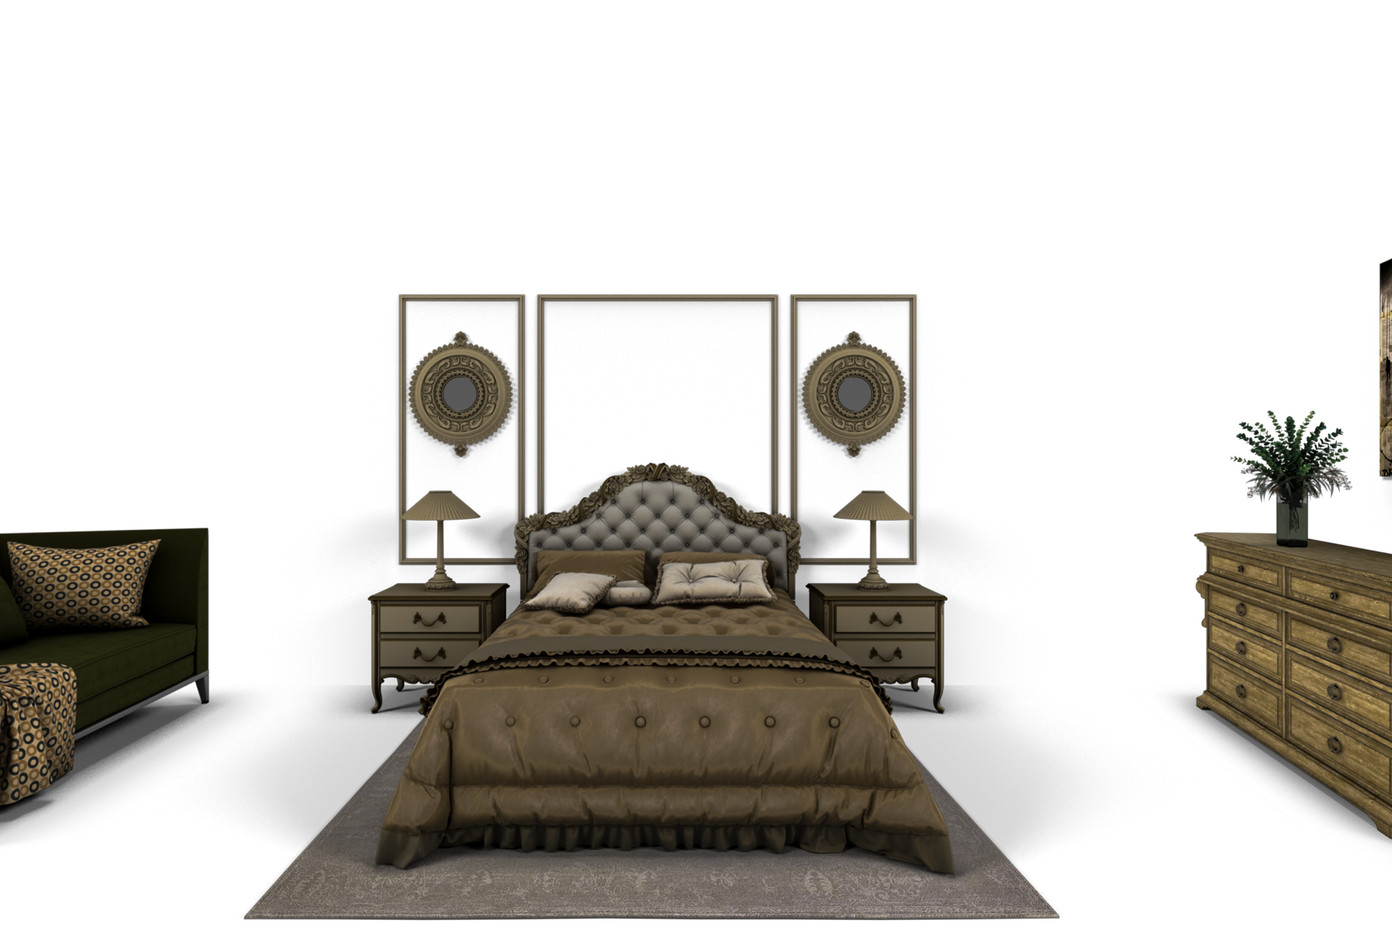 Bedroom French_Country 5.jpg